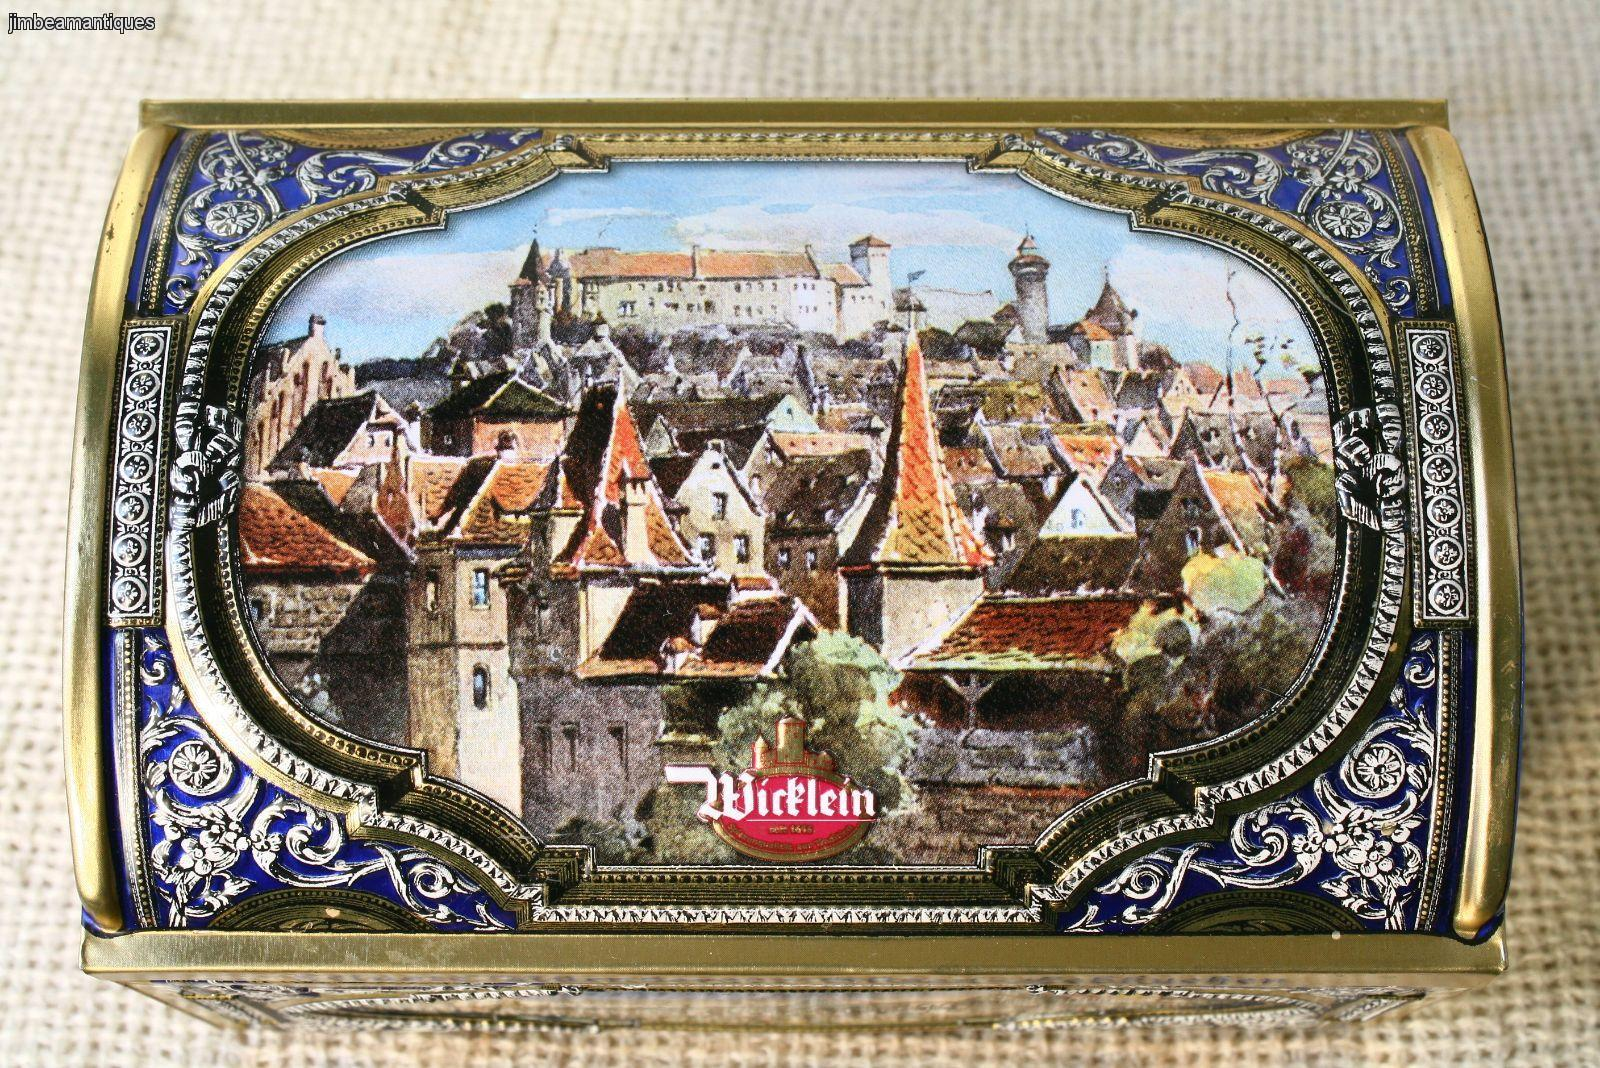 nurnberg germany lebkuchen gottfried wicklein cookie tin chest music box ebay. Black Bedroom Furniture Sets. Home Design Ideas